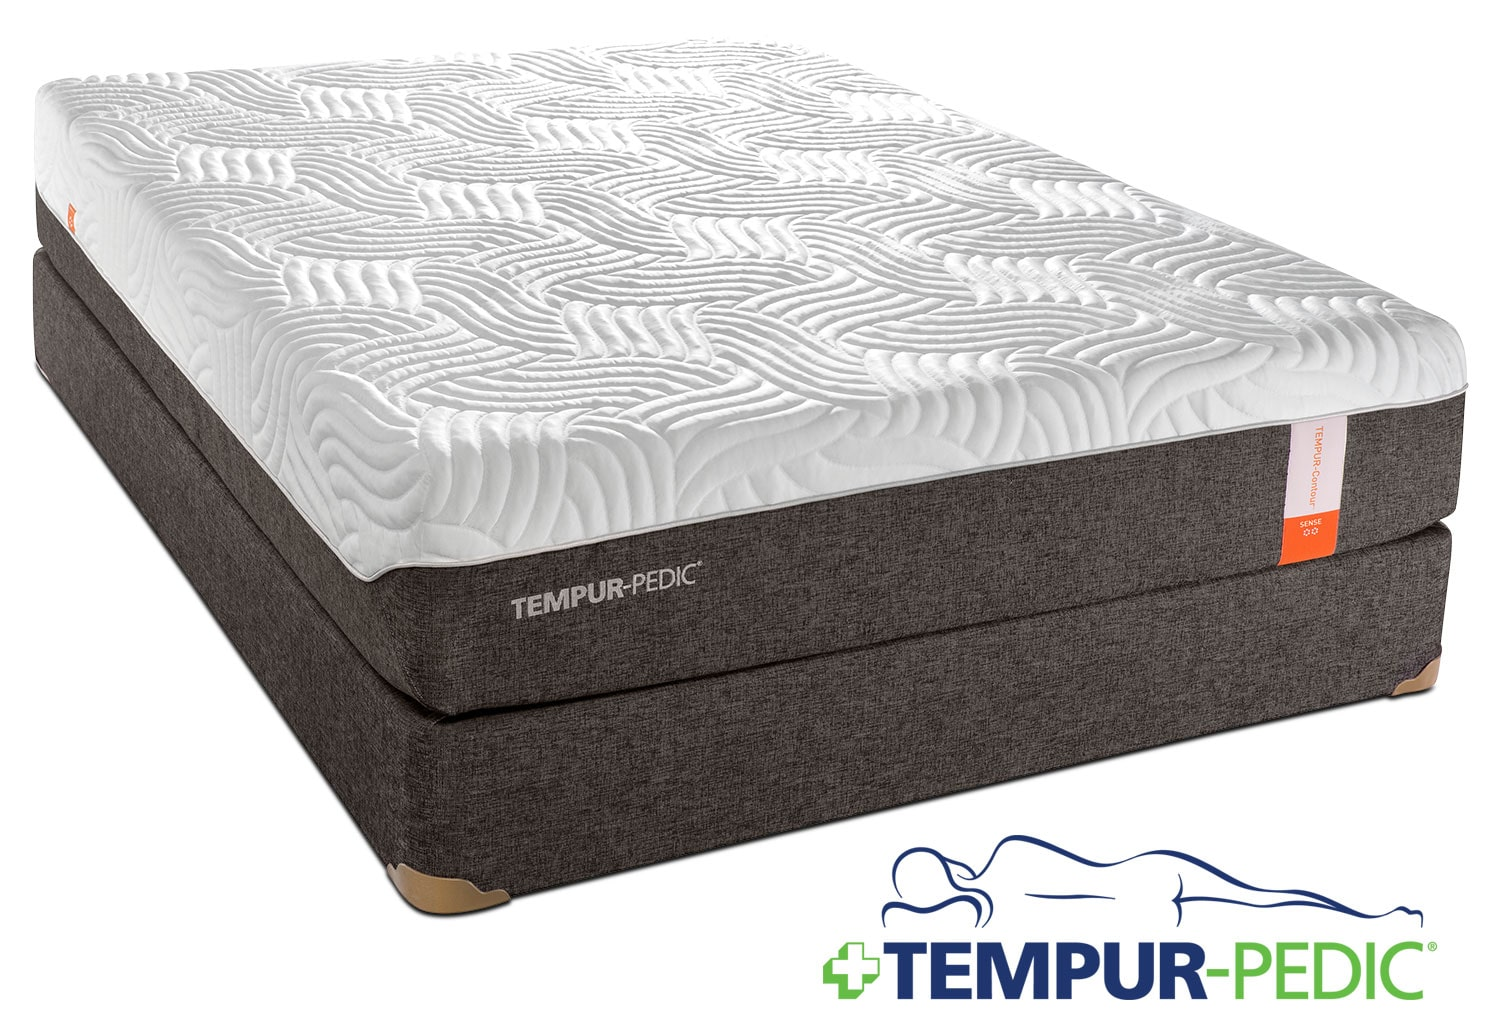 Mattresses and Bedding - Tempur-Pedic Sense King Mattress/Boxspring Set